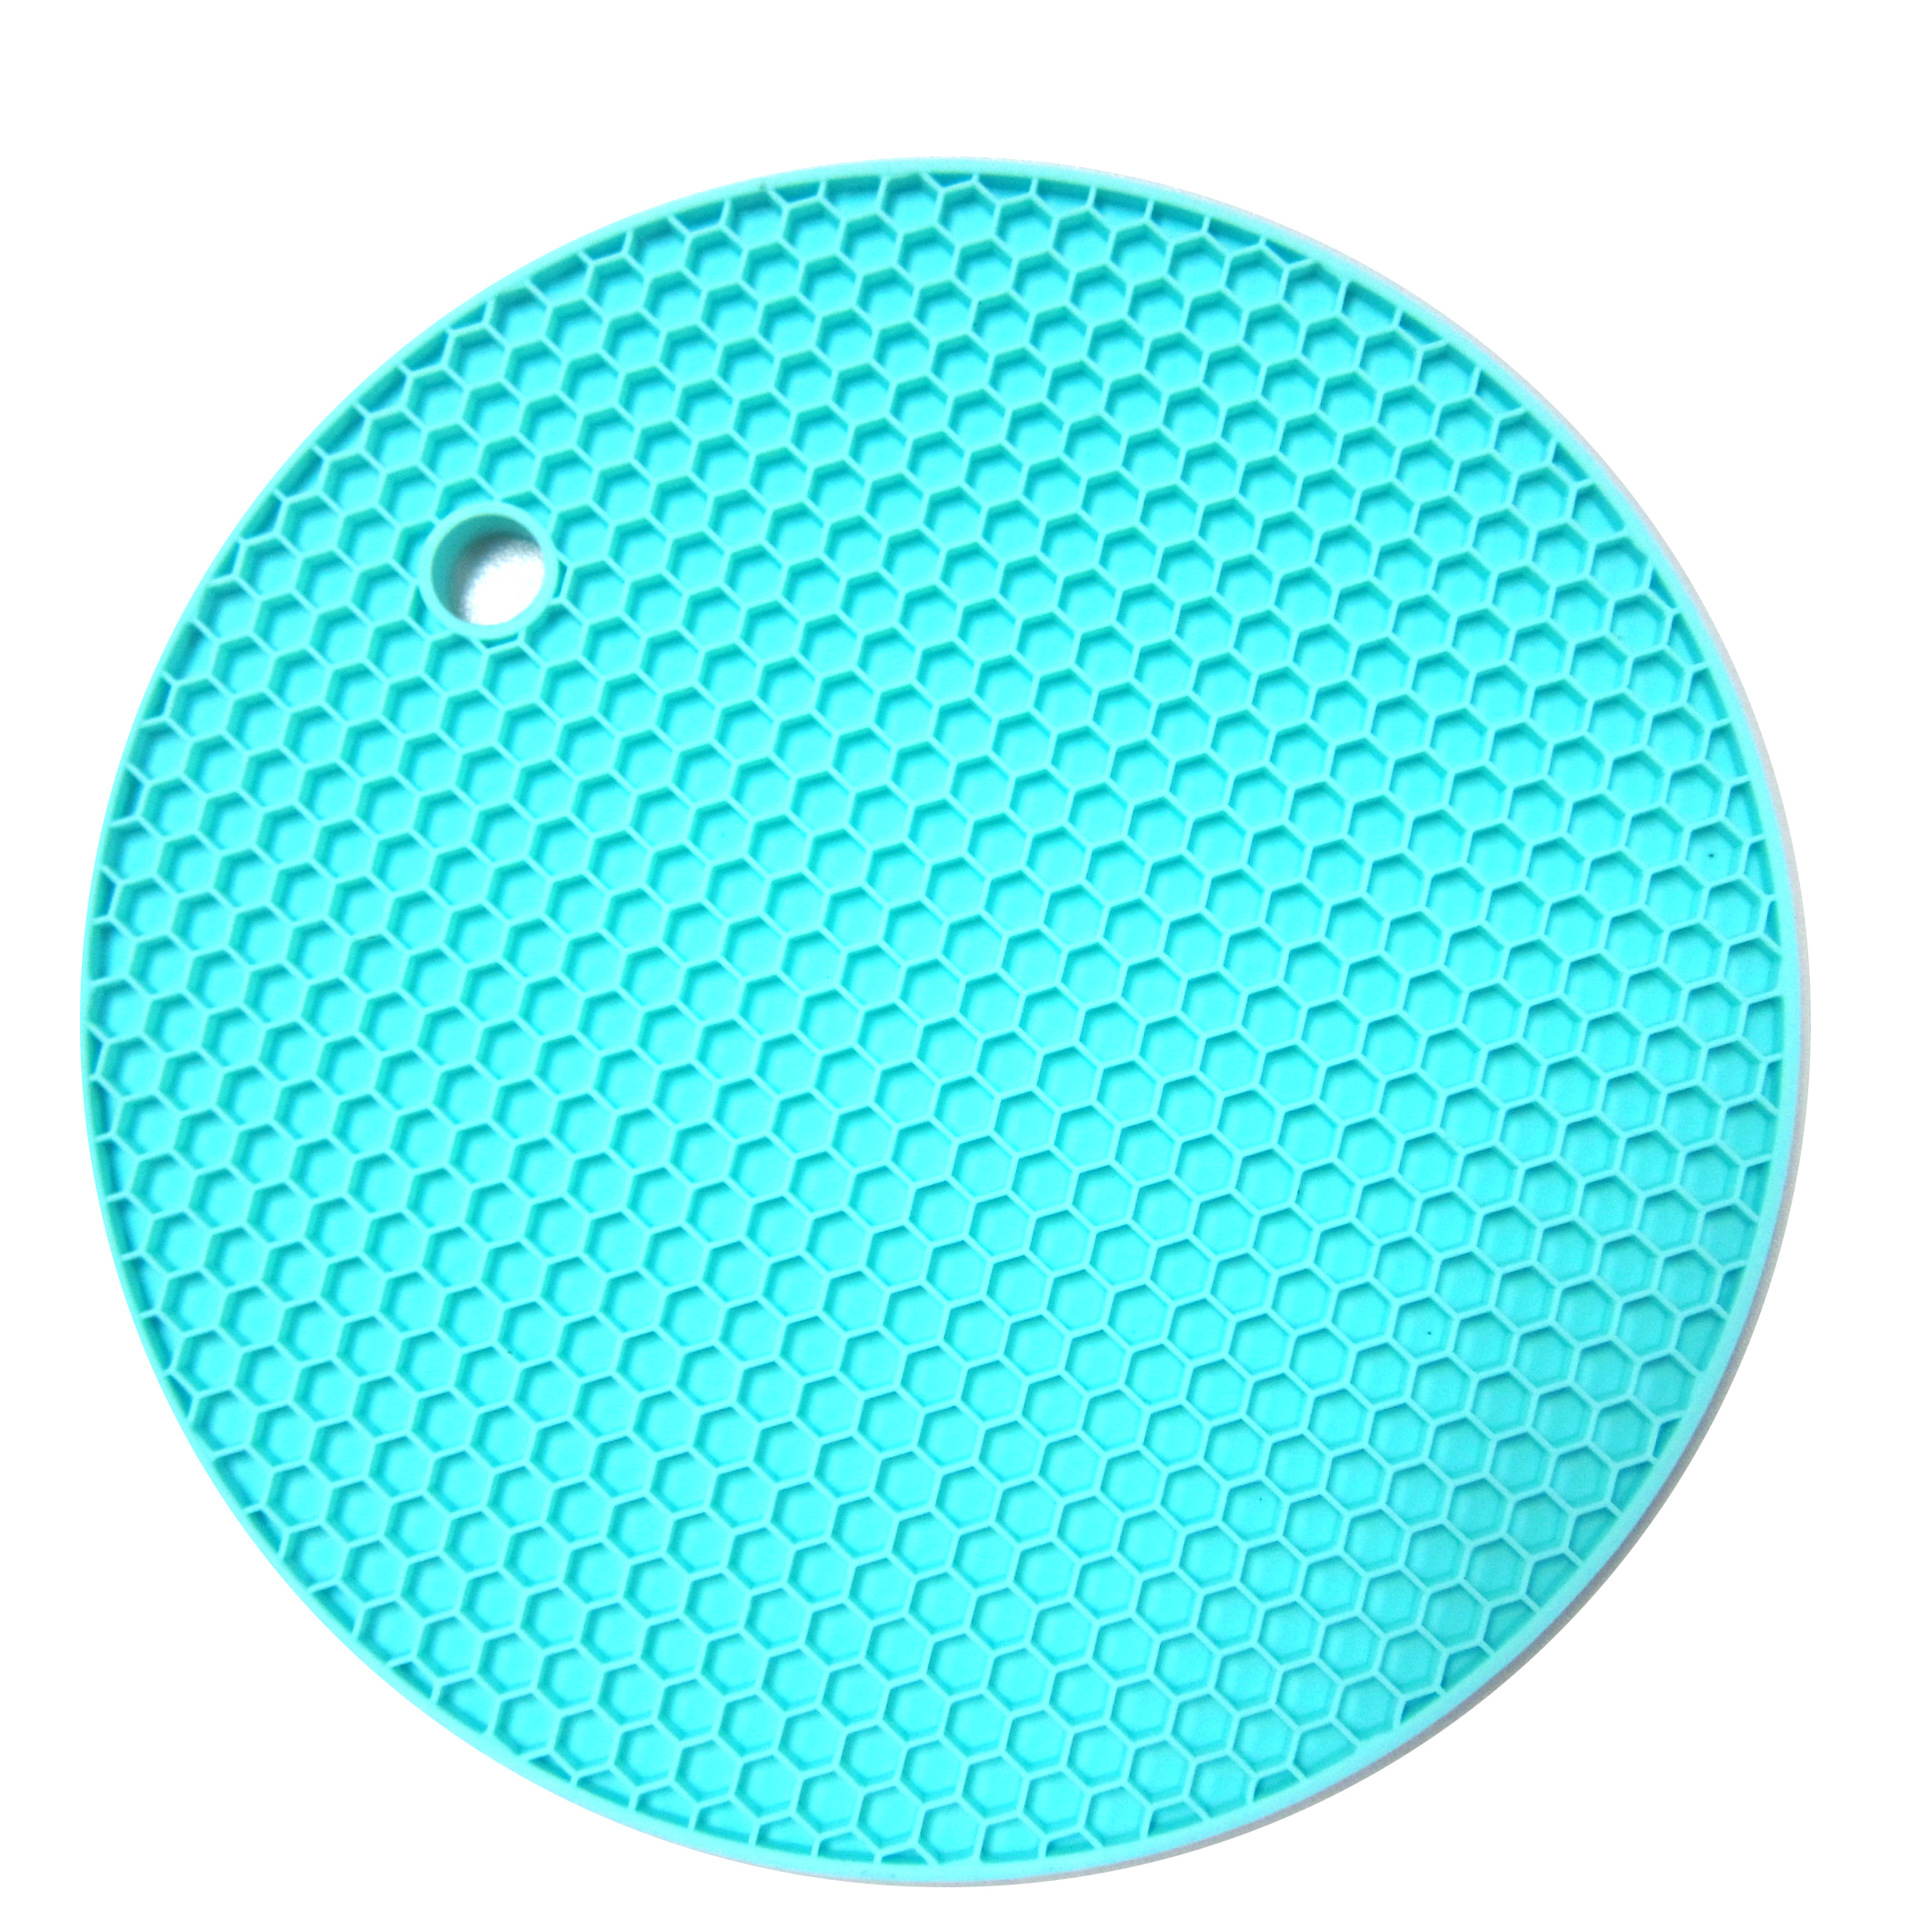 sheet resistant barbecue mats matspack biscuit set silicone baking cake kitchen suitable heat pastry non buy cookie or liner stick louis production occasion will of any mat size for